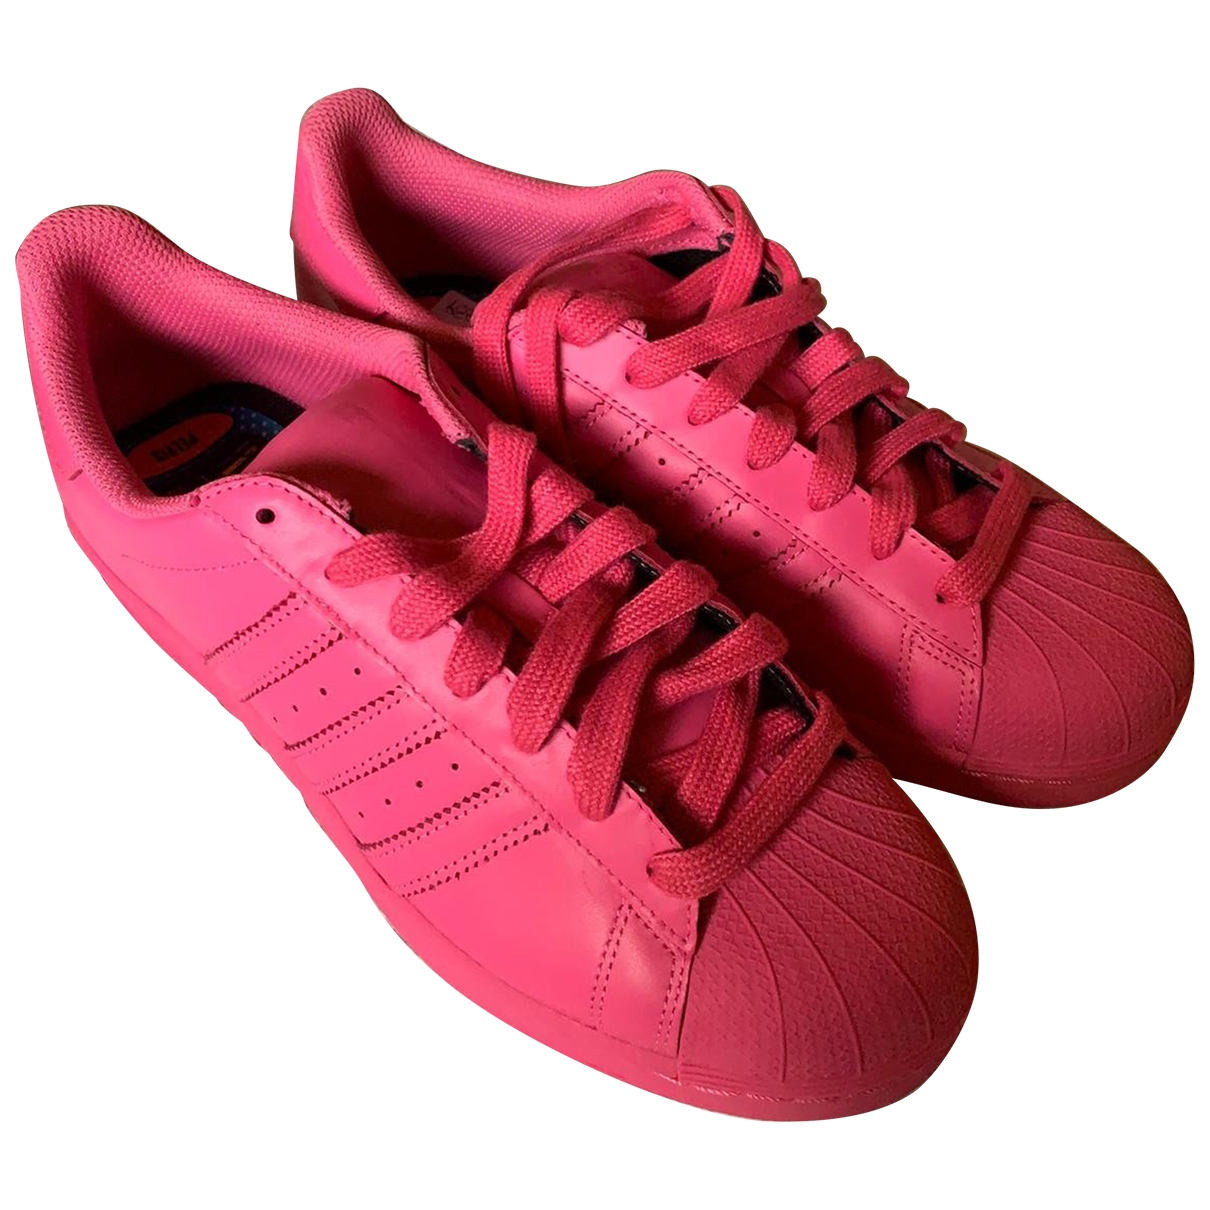 Adidas X Pharrell Williams \N Pink Leather Trainers for Men 42 EU